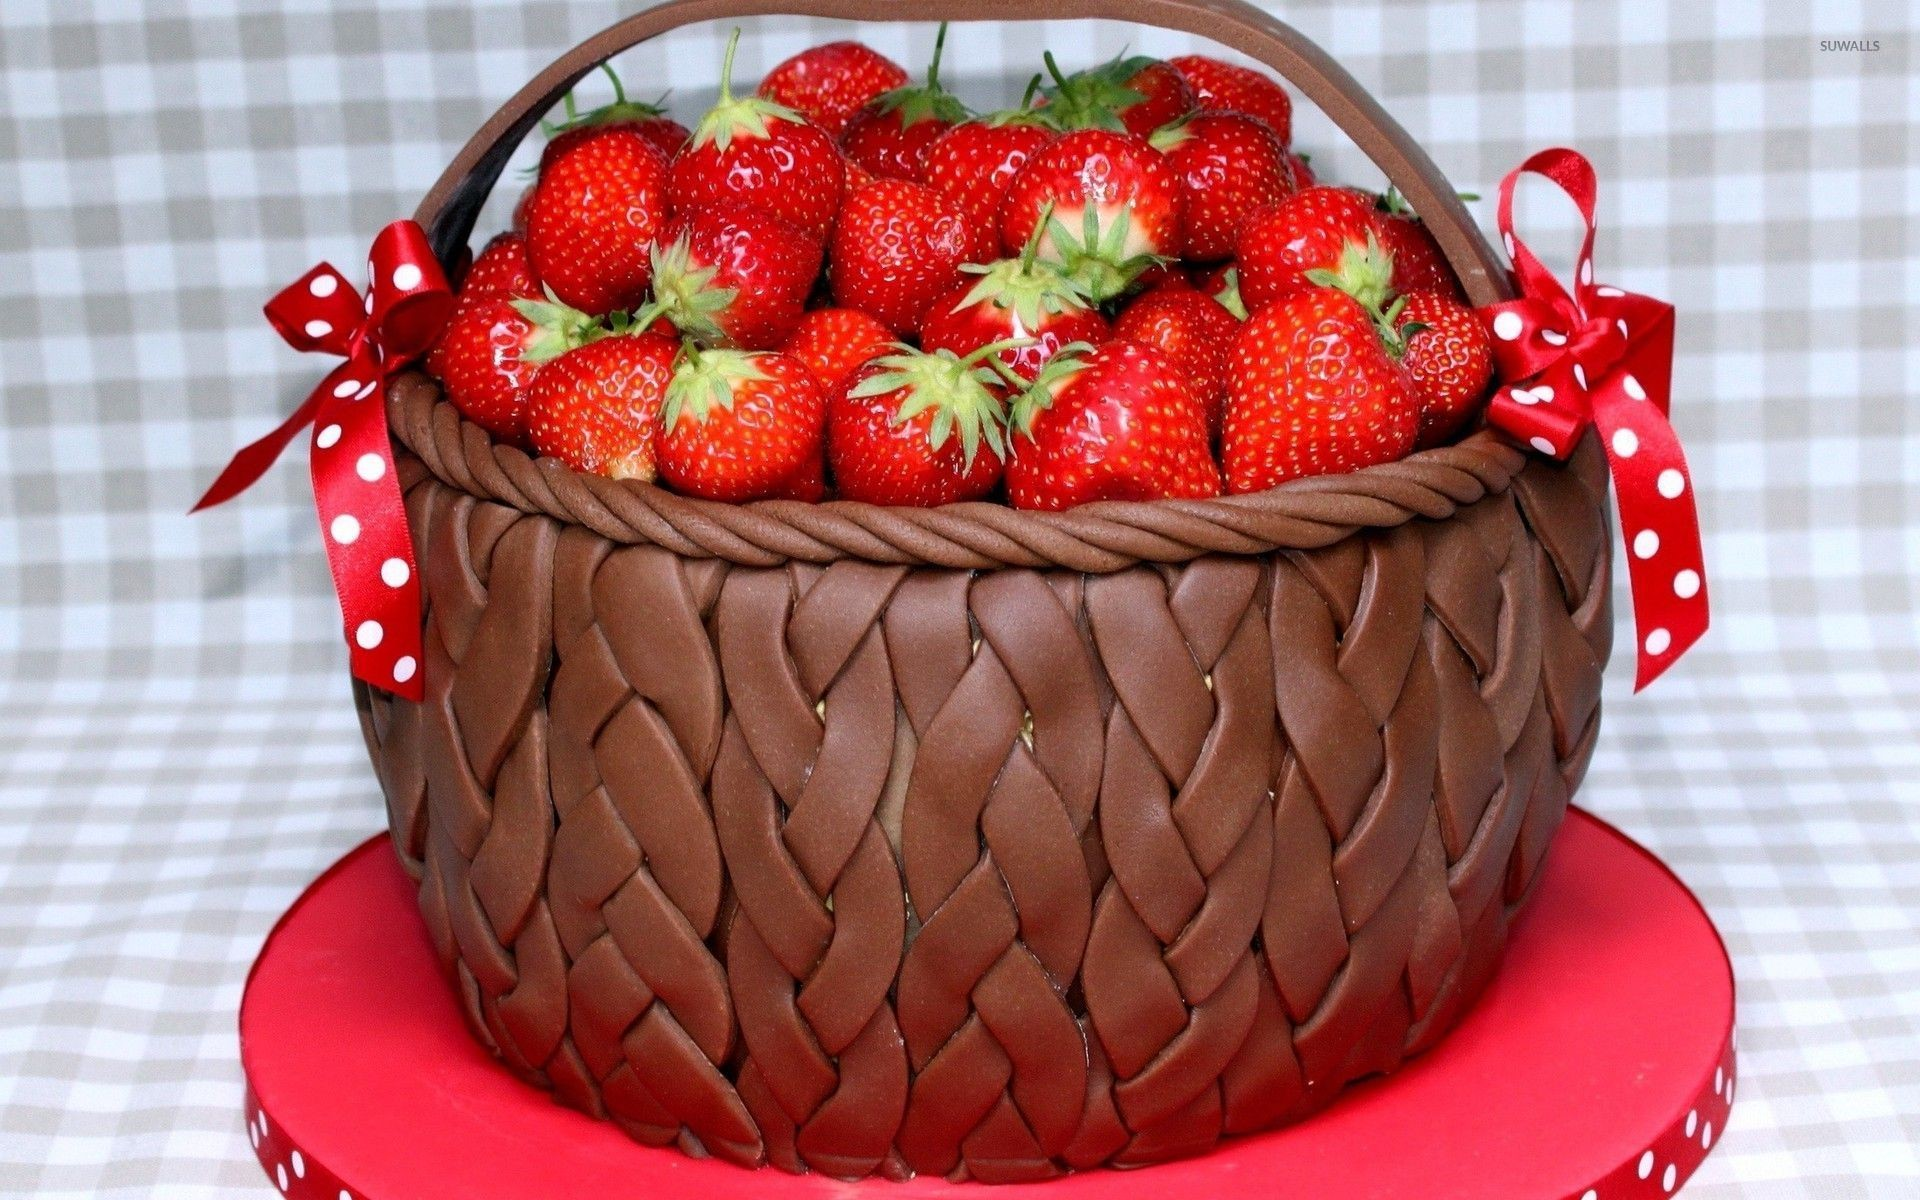 1920x1200 Strawberries in a chocolate basket wallpaper